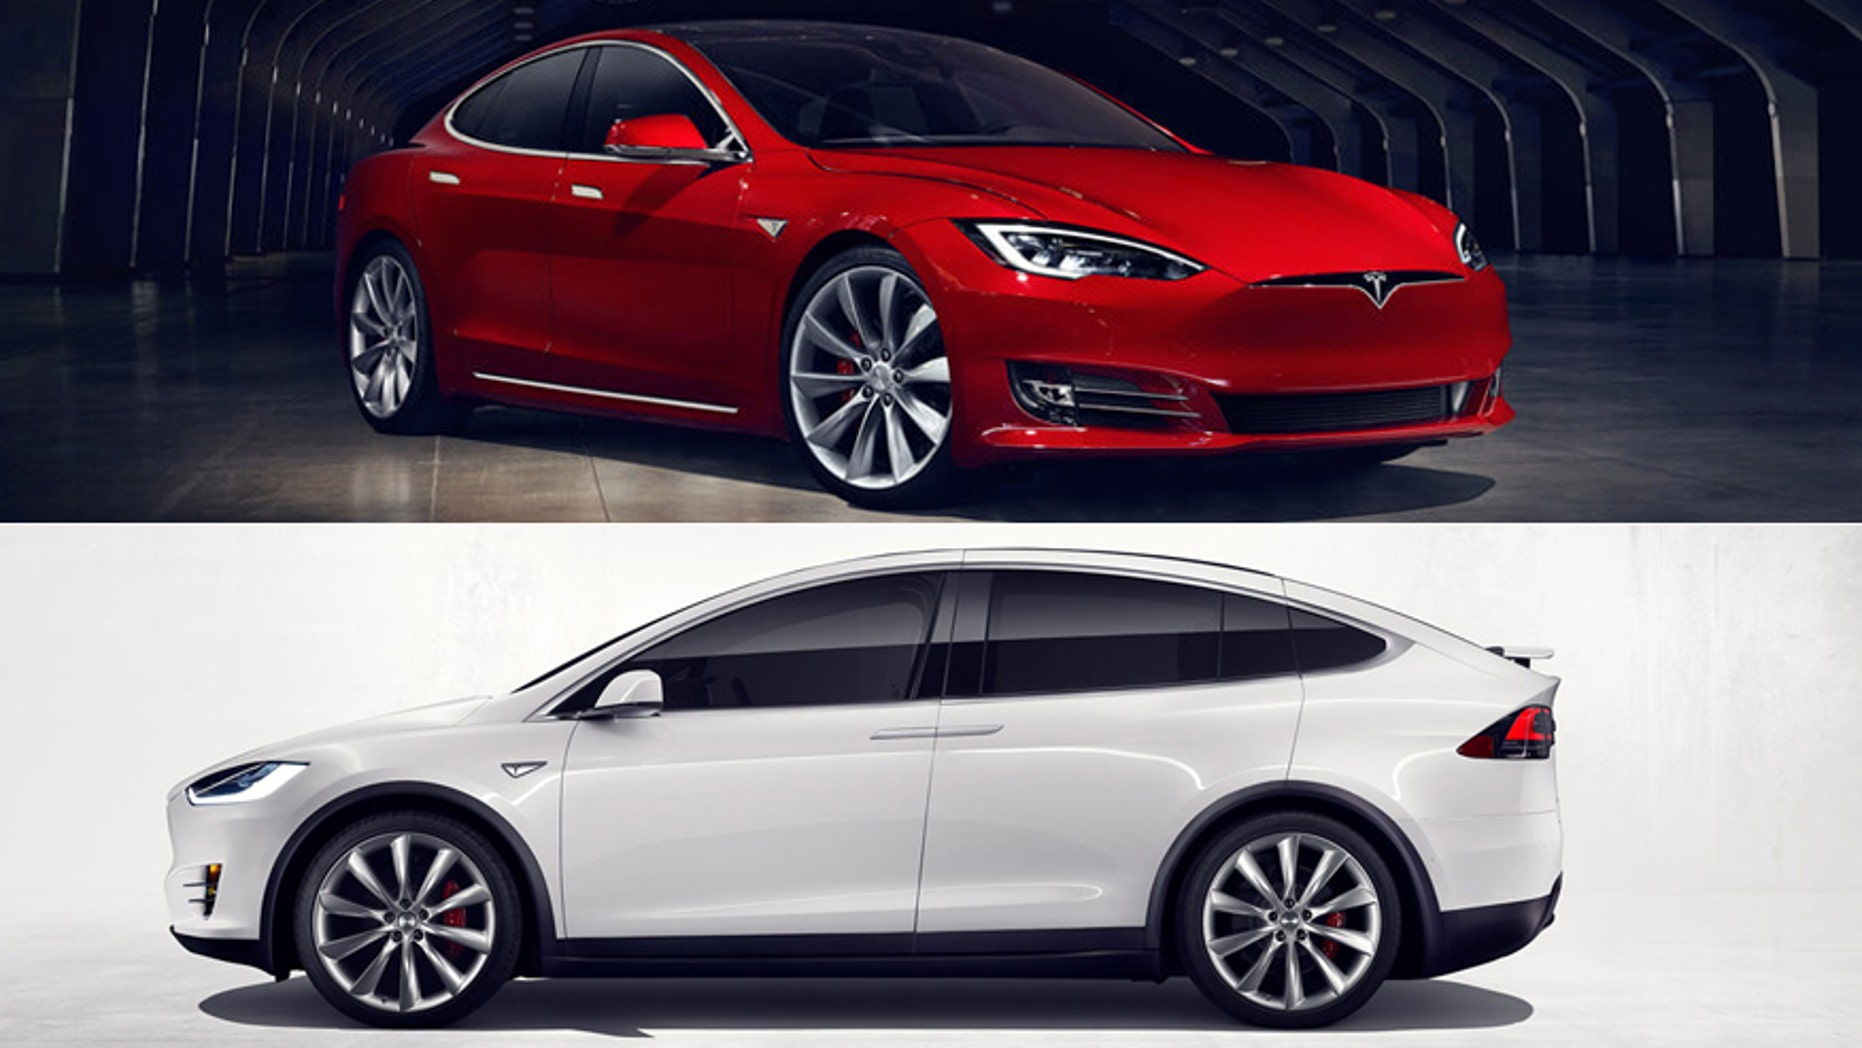 Most Powerful American Cars-2017 Tesla Model S/X P100D